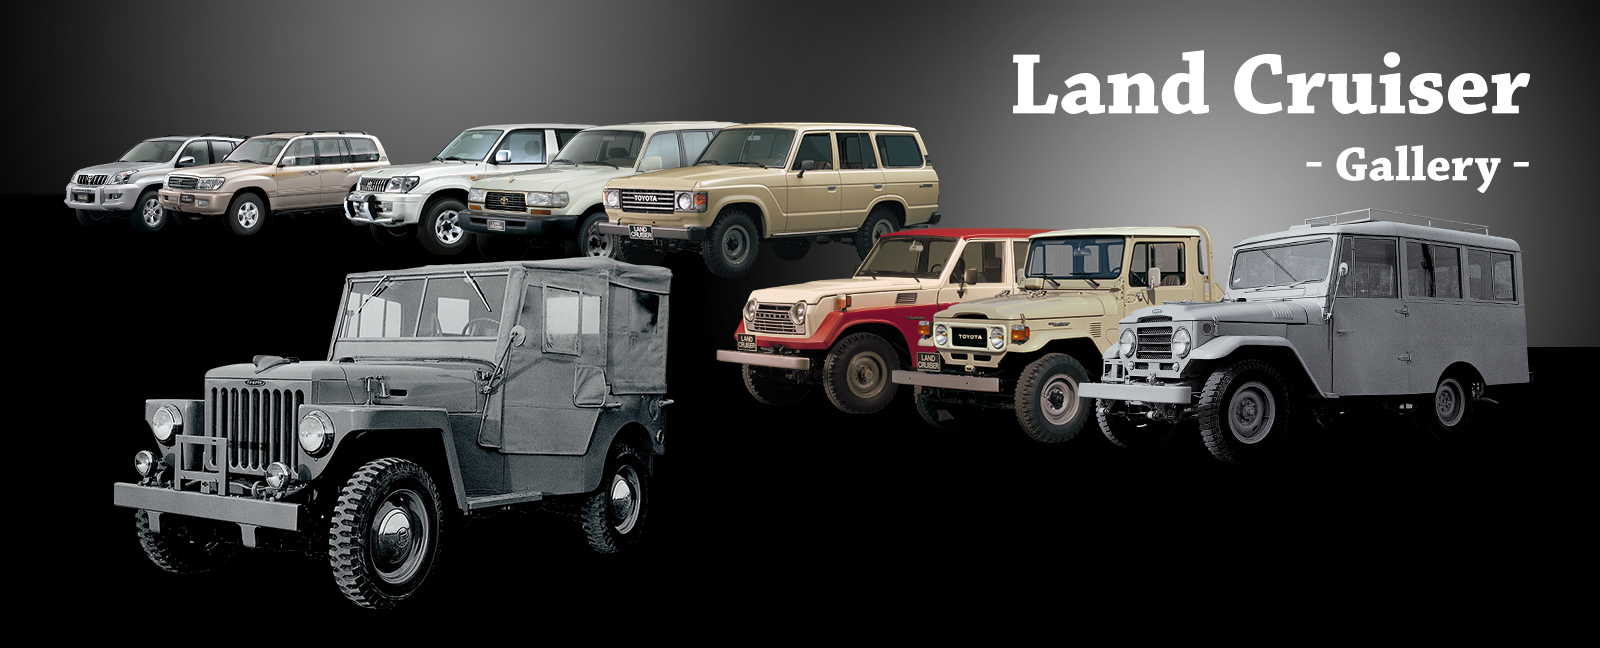 Vehicle Heritage, Land Cruiser, Gallery